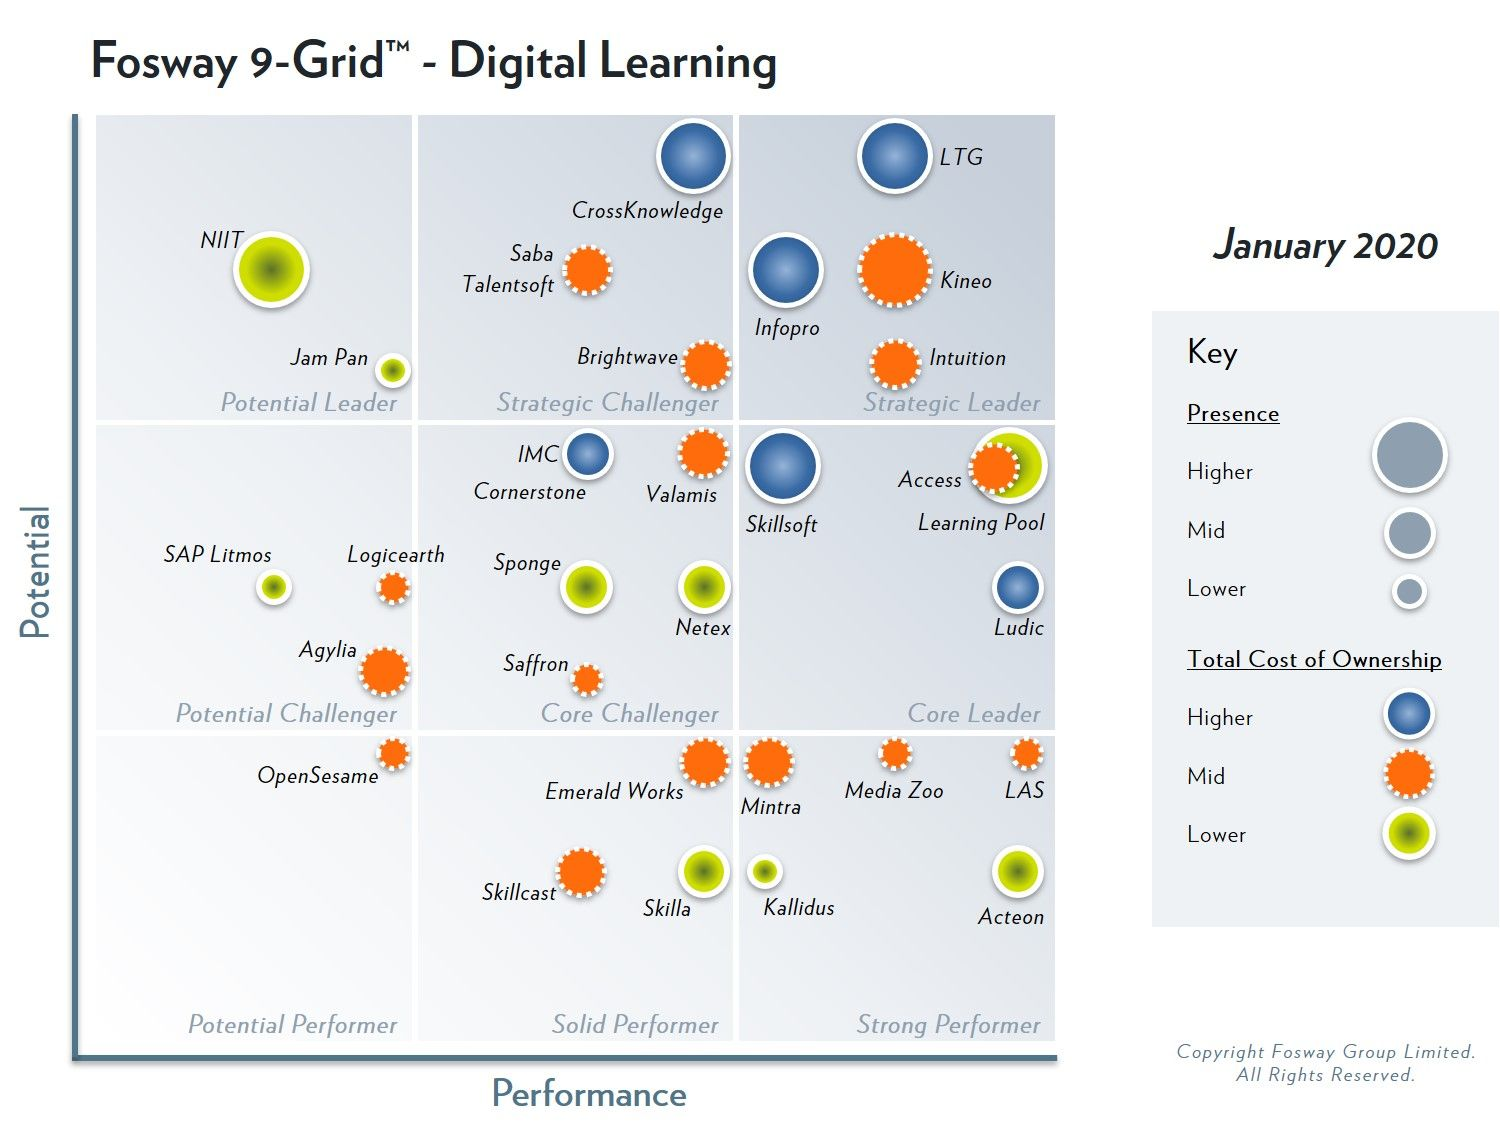 Fosway 9-Grid™ for Digital Learning 2020